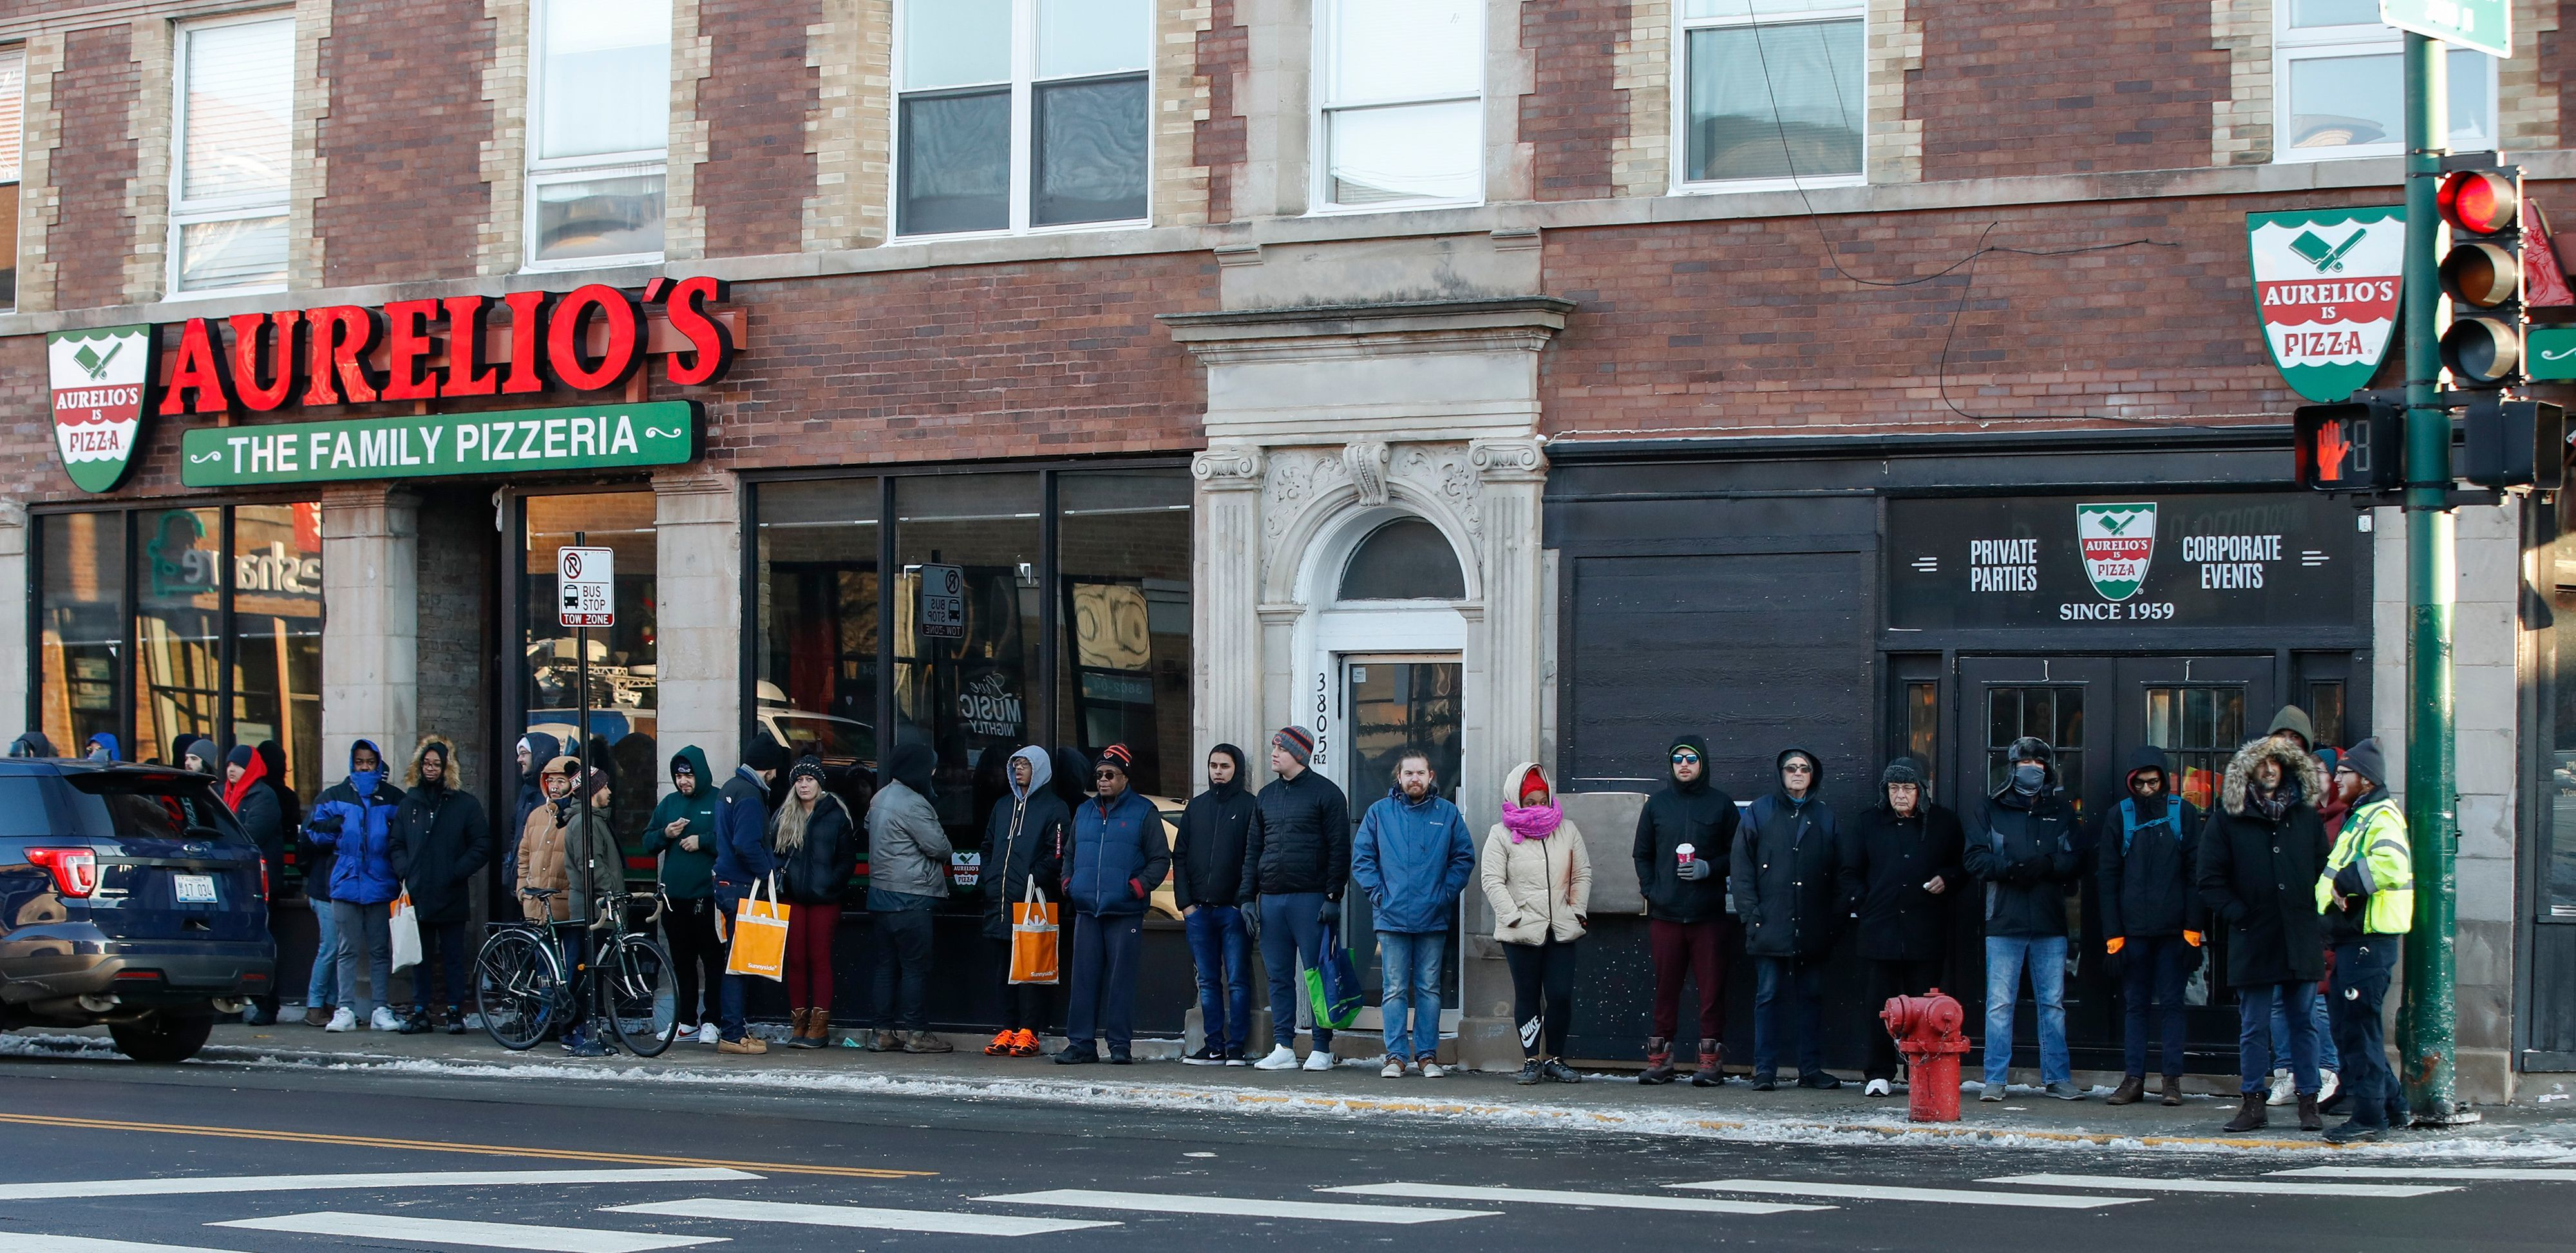 On January 1, 2020 customers wait in line outside Sunnyside Cannabis Dispensary to purchase recreational marijuana.